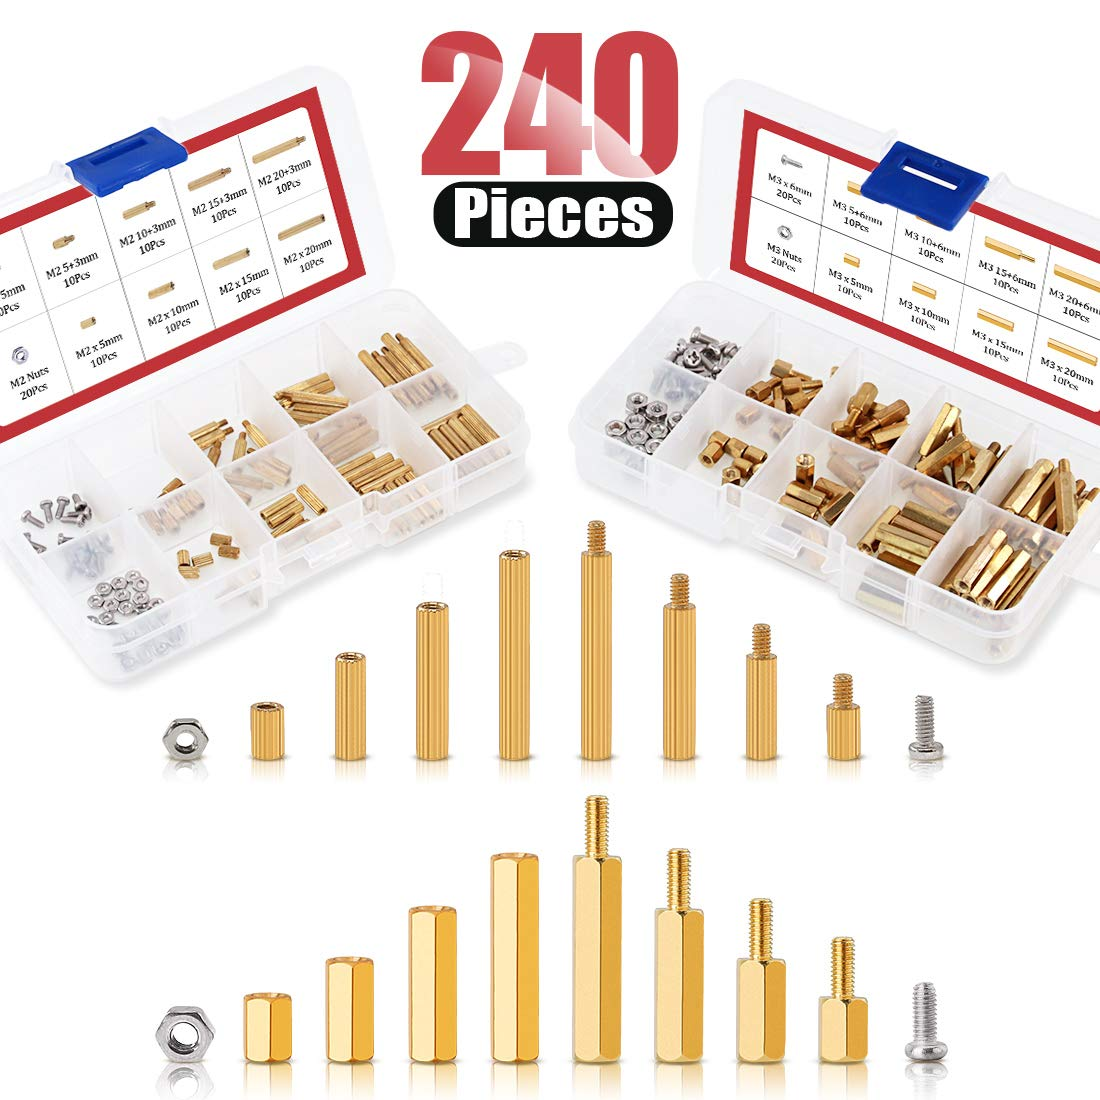 Hilitchi 240Pcs M2 M3 Male Female Hex Brass Spacer Standoff Screw Nuts Hex Standoff M2 Threaded Pillar Motherboard Assortment Kit